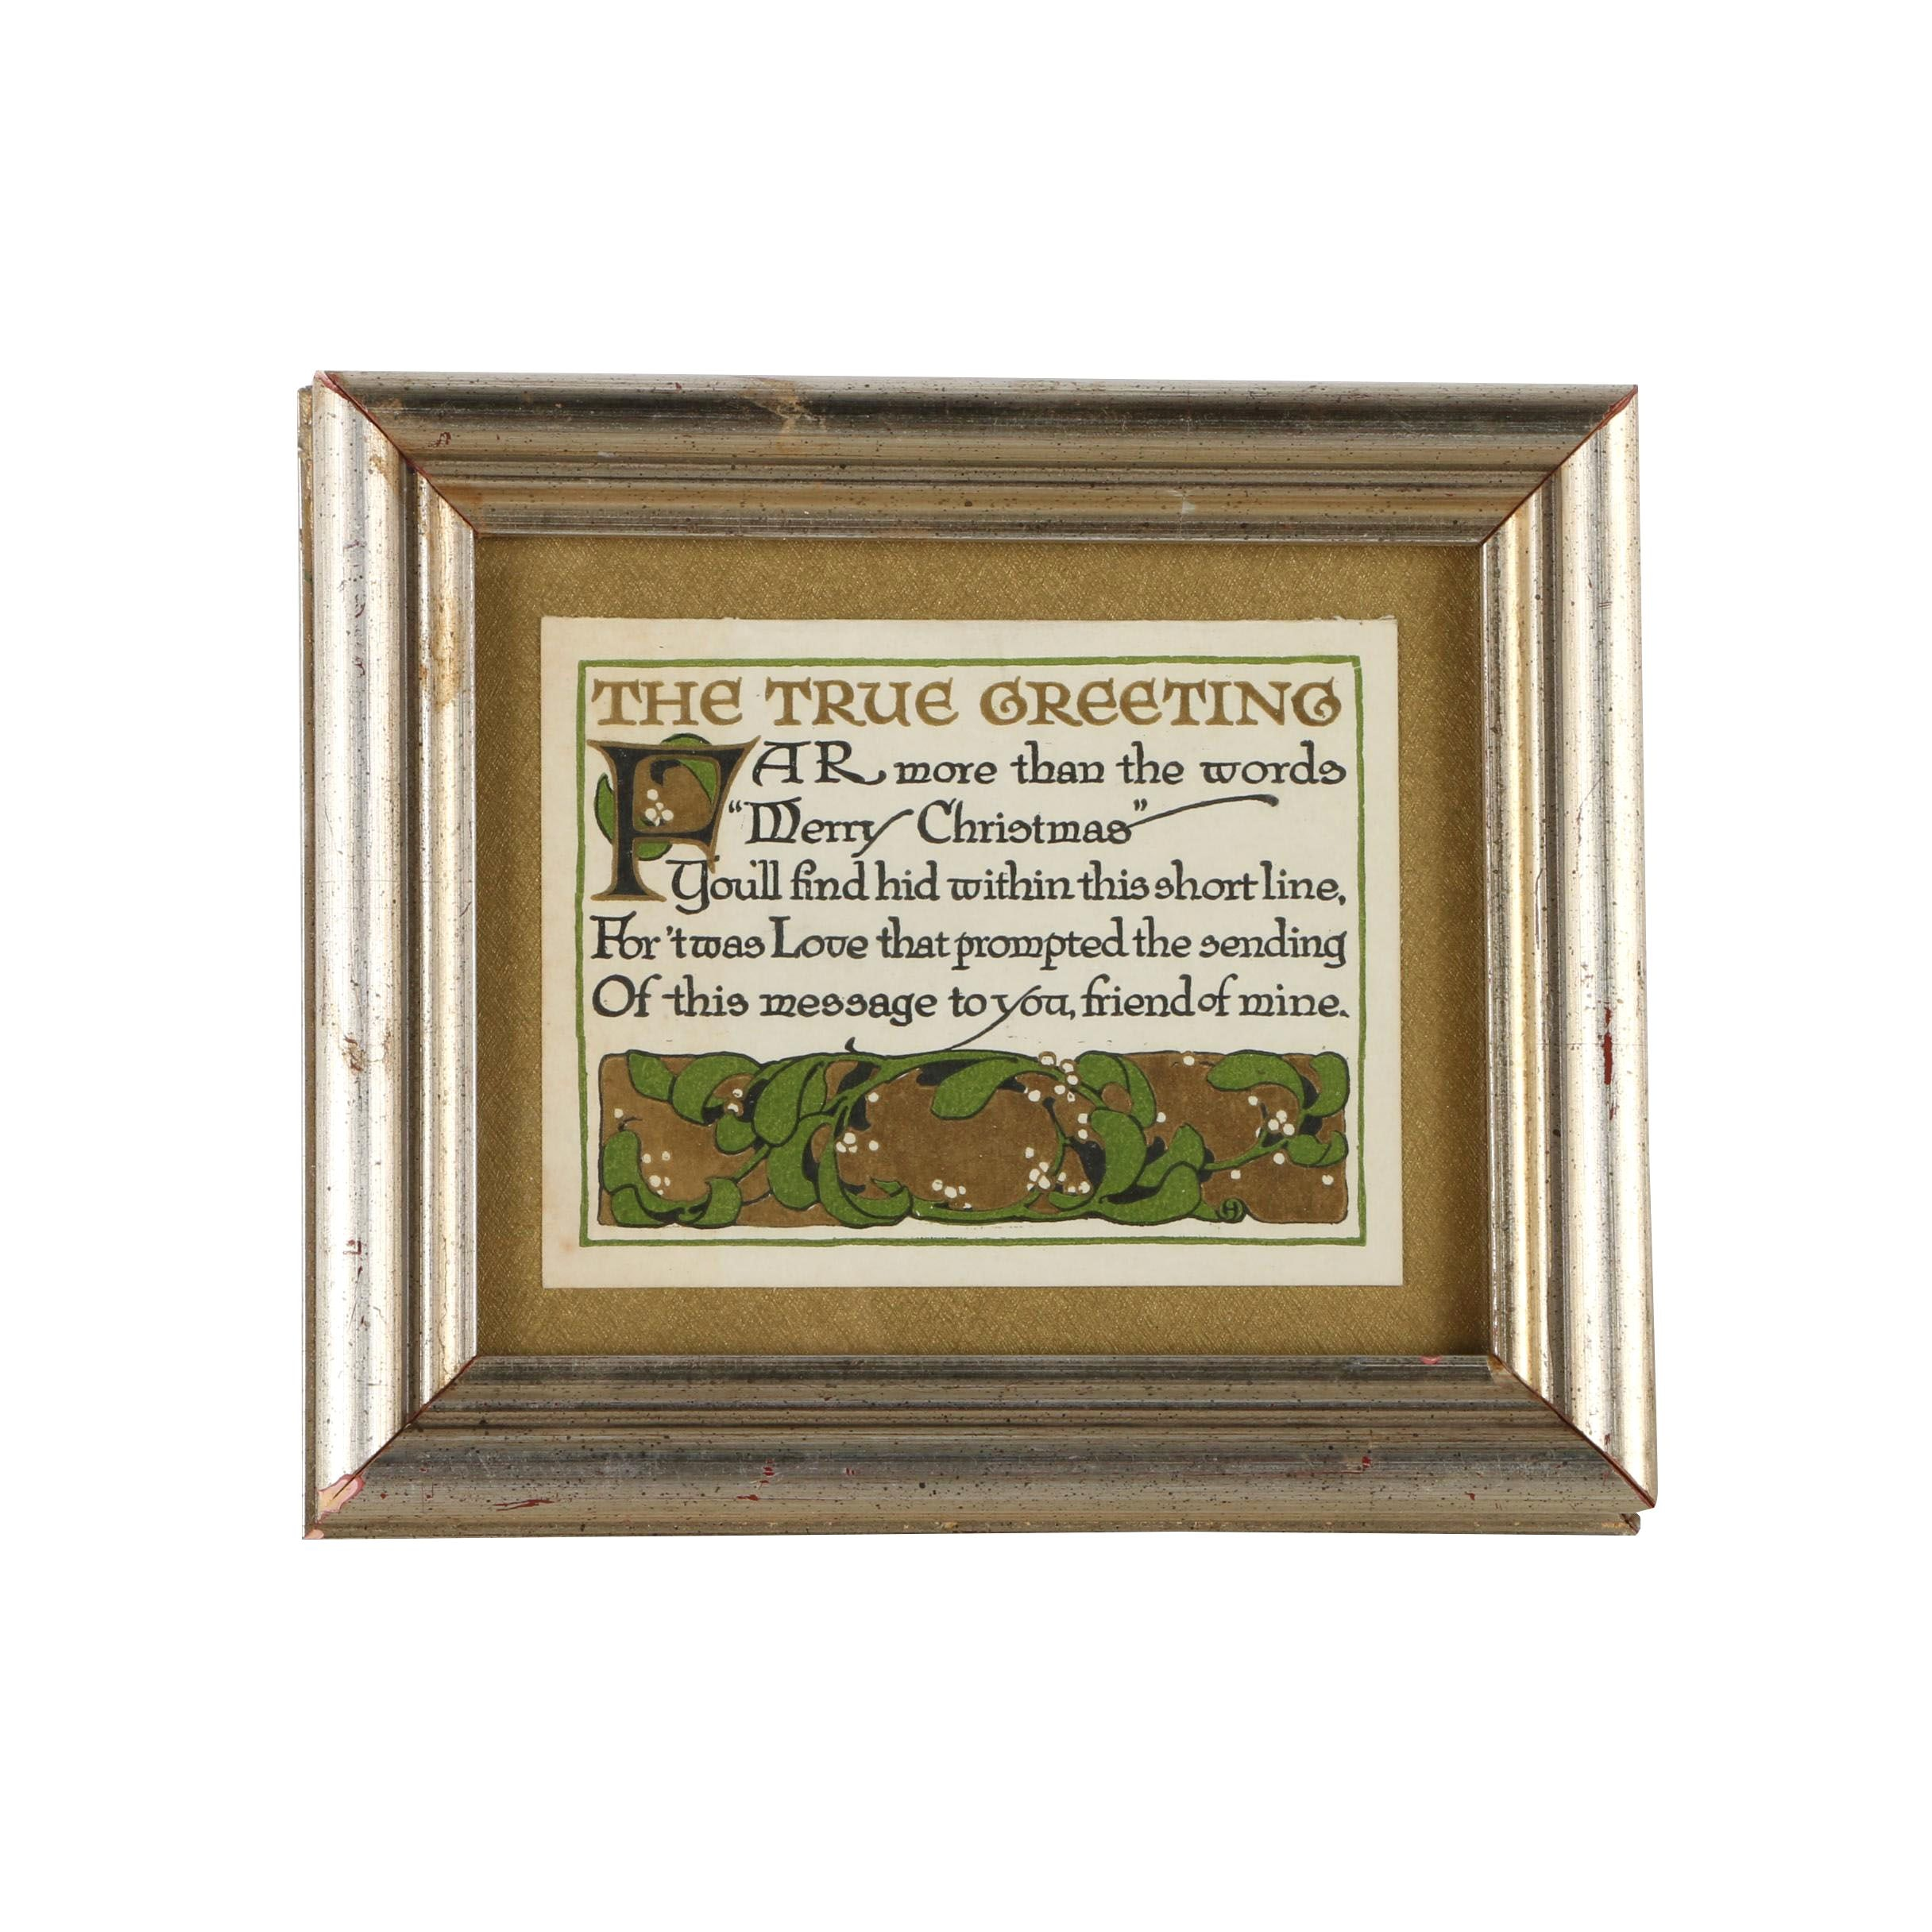 Hand Colored Relief Print of a Christmas Blessing